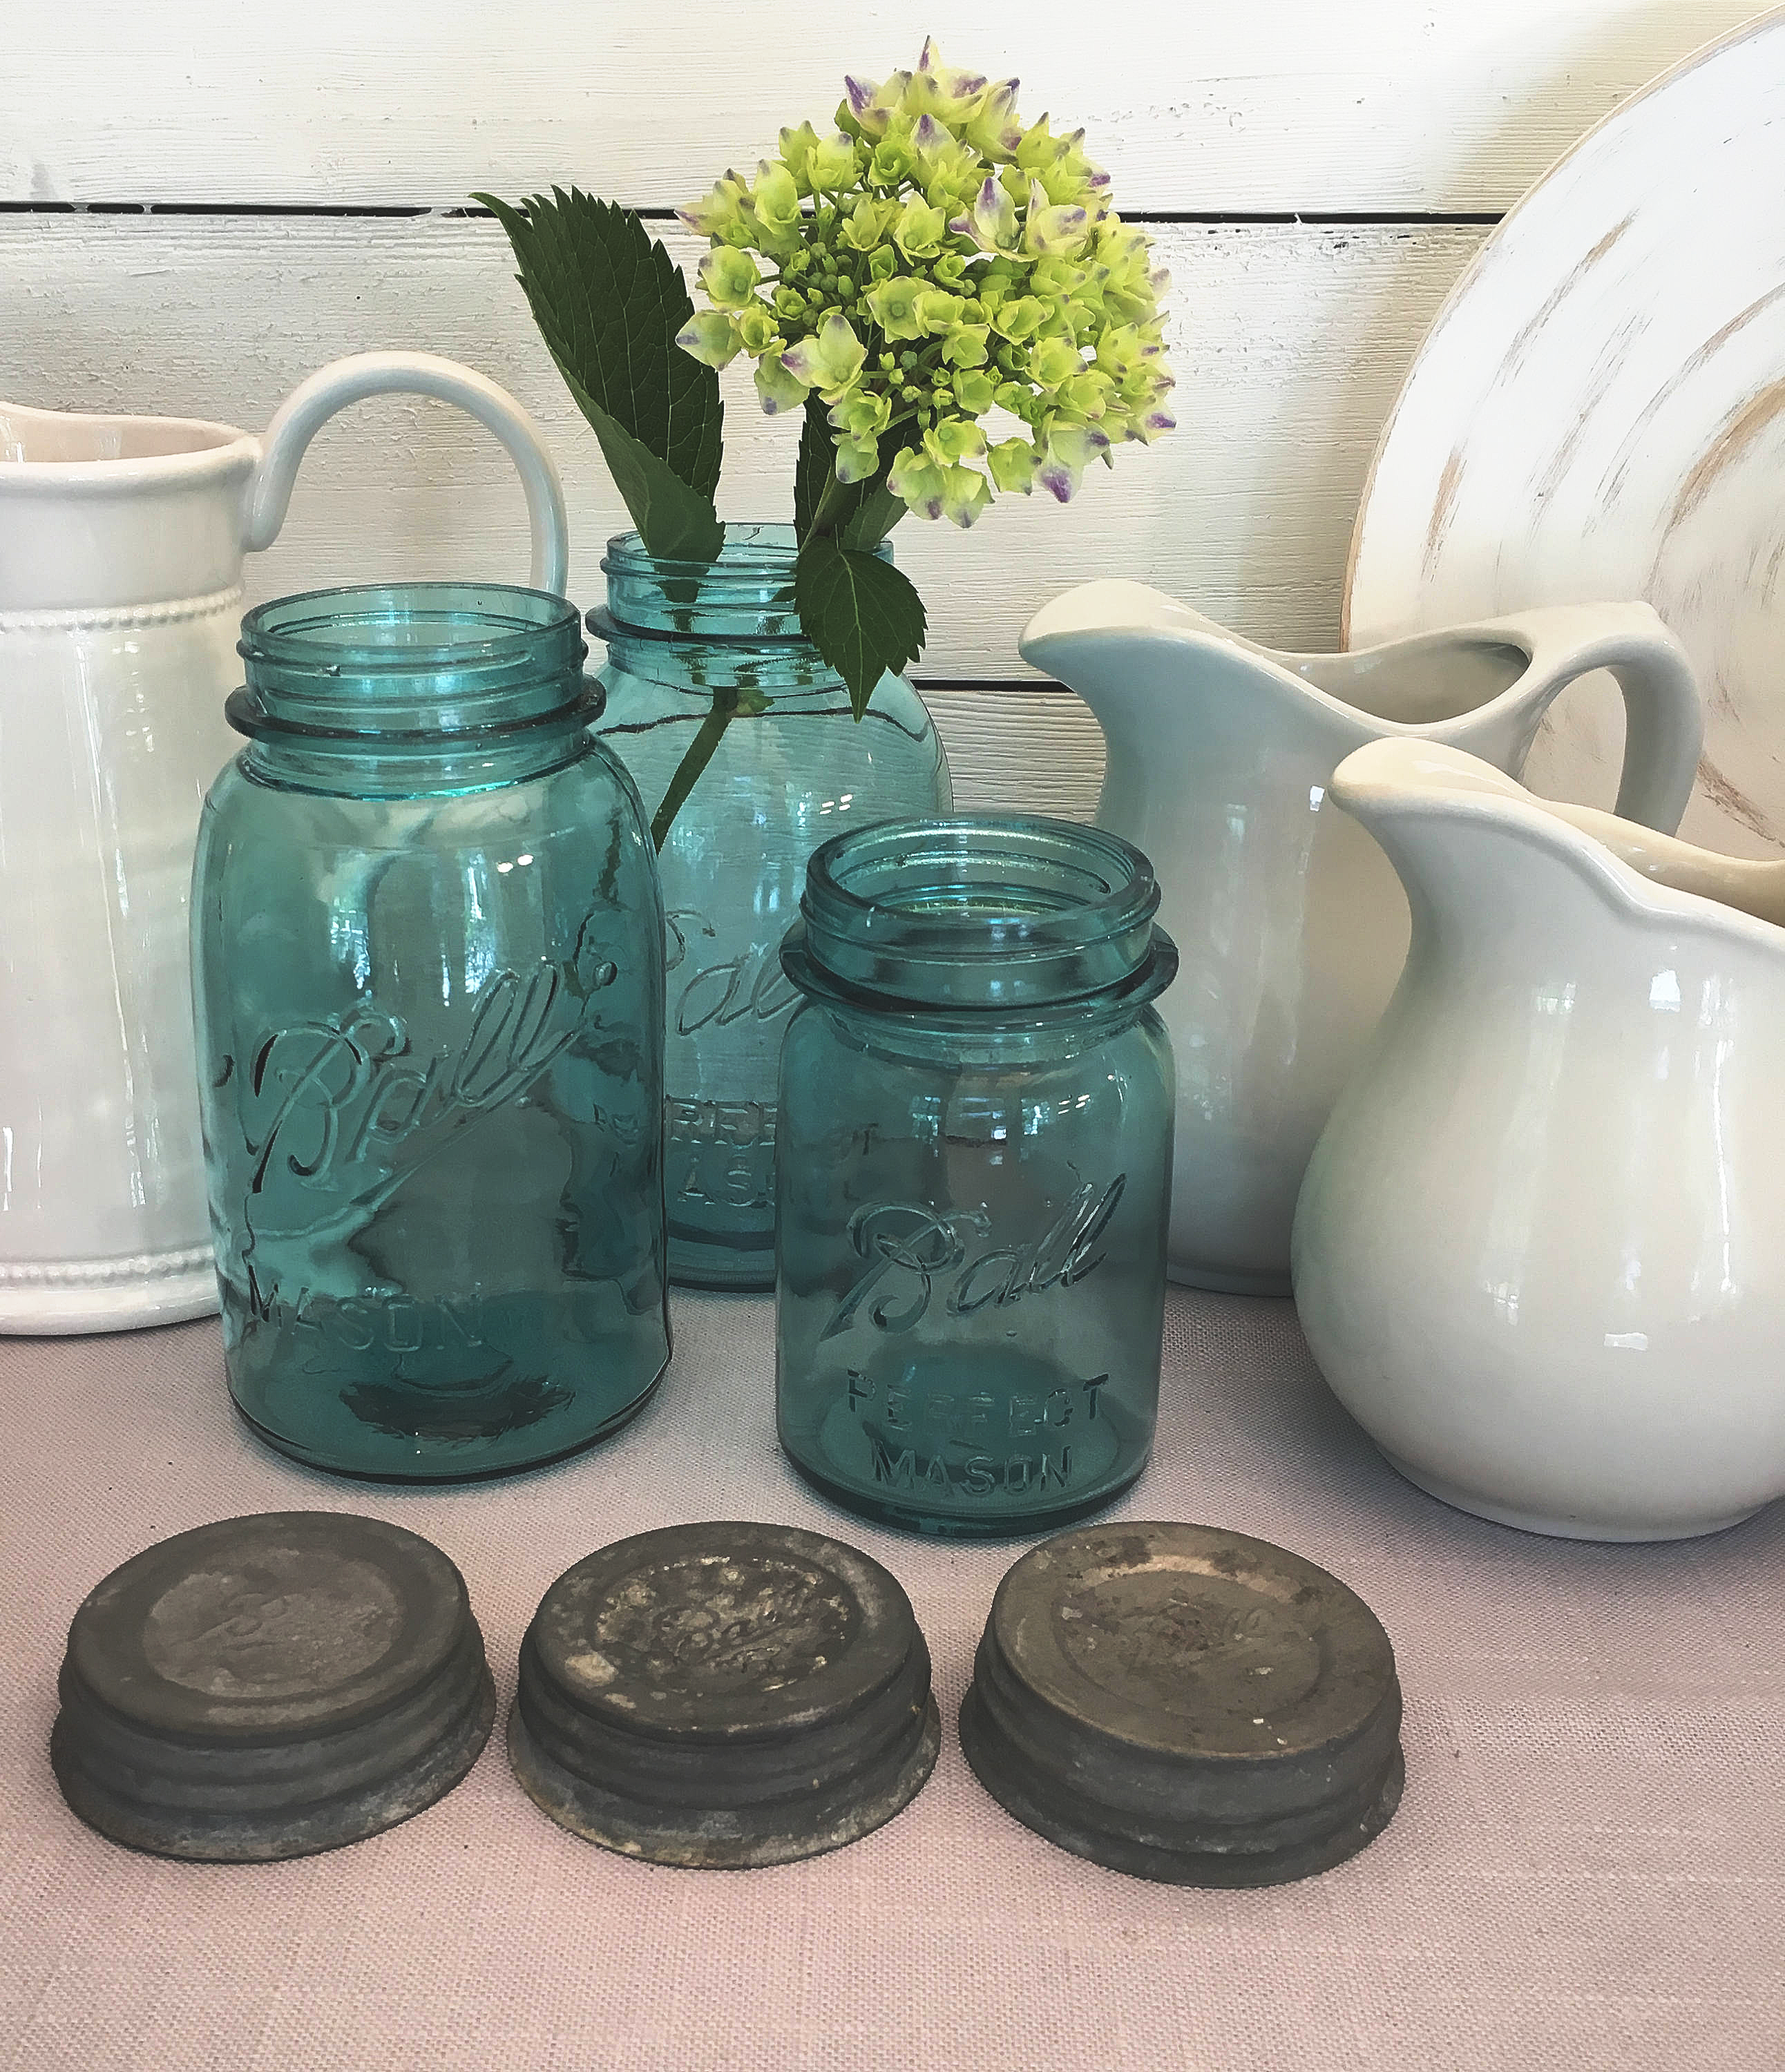 Decorating with antiques: ball jars